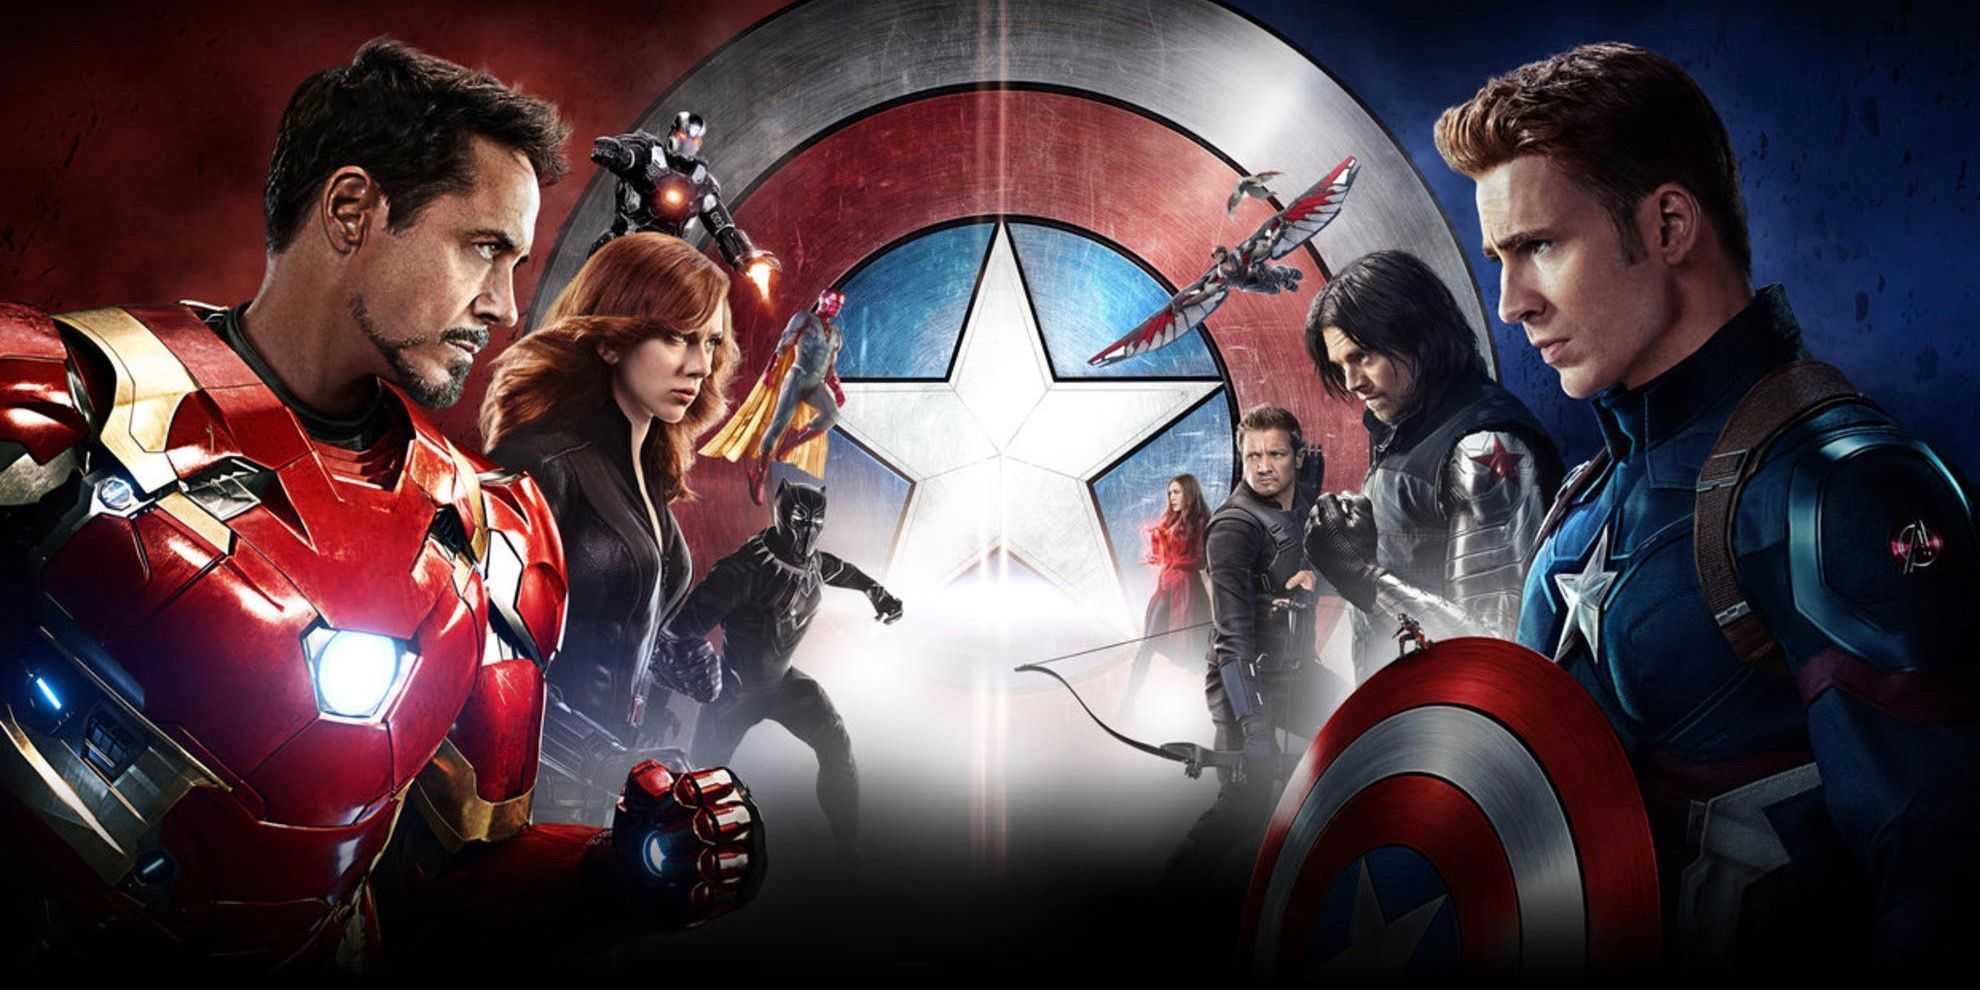 20 Things About Captain America: Civil War That Make No Sense